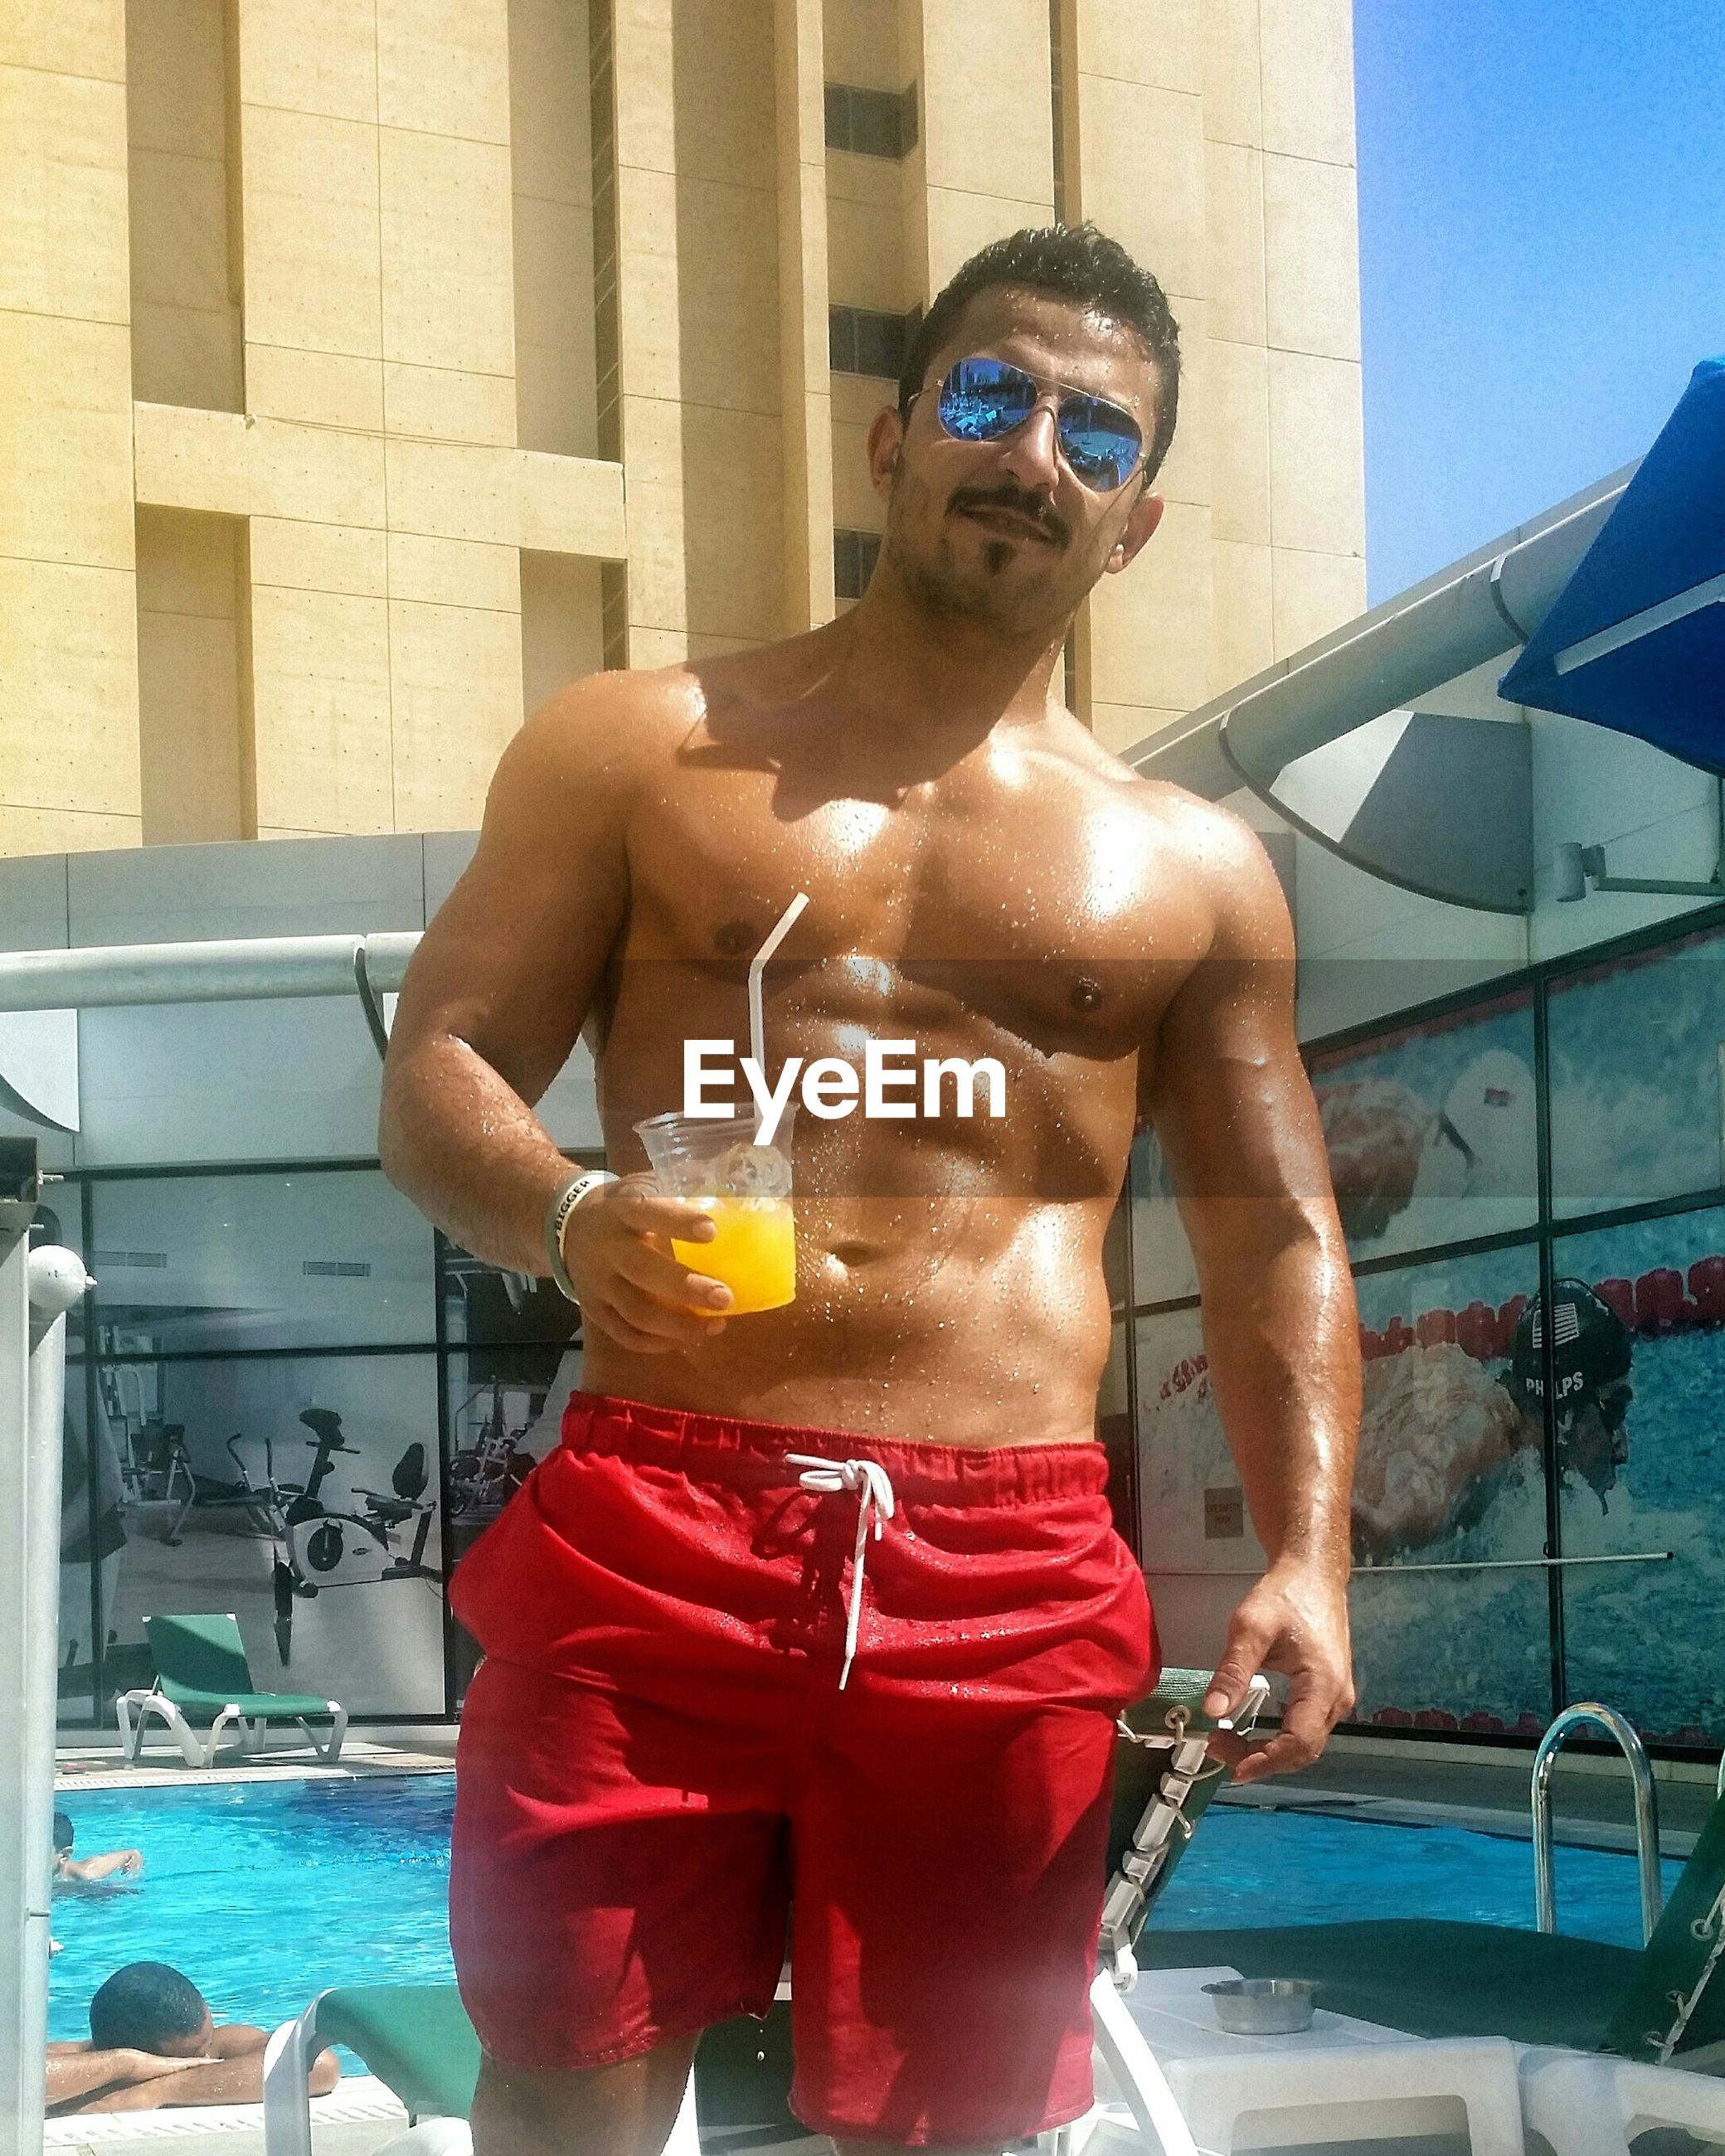 lifestyles, leisure activity, water, holding, built structure, architecture, swimming pool, men, person, building exterior, blue, casual clothing, refreshment, motion, glass - material, shirtless